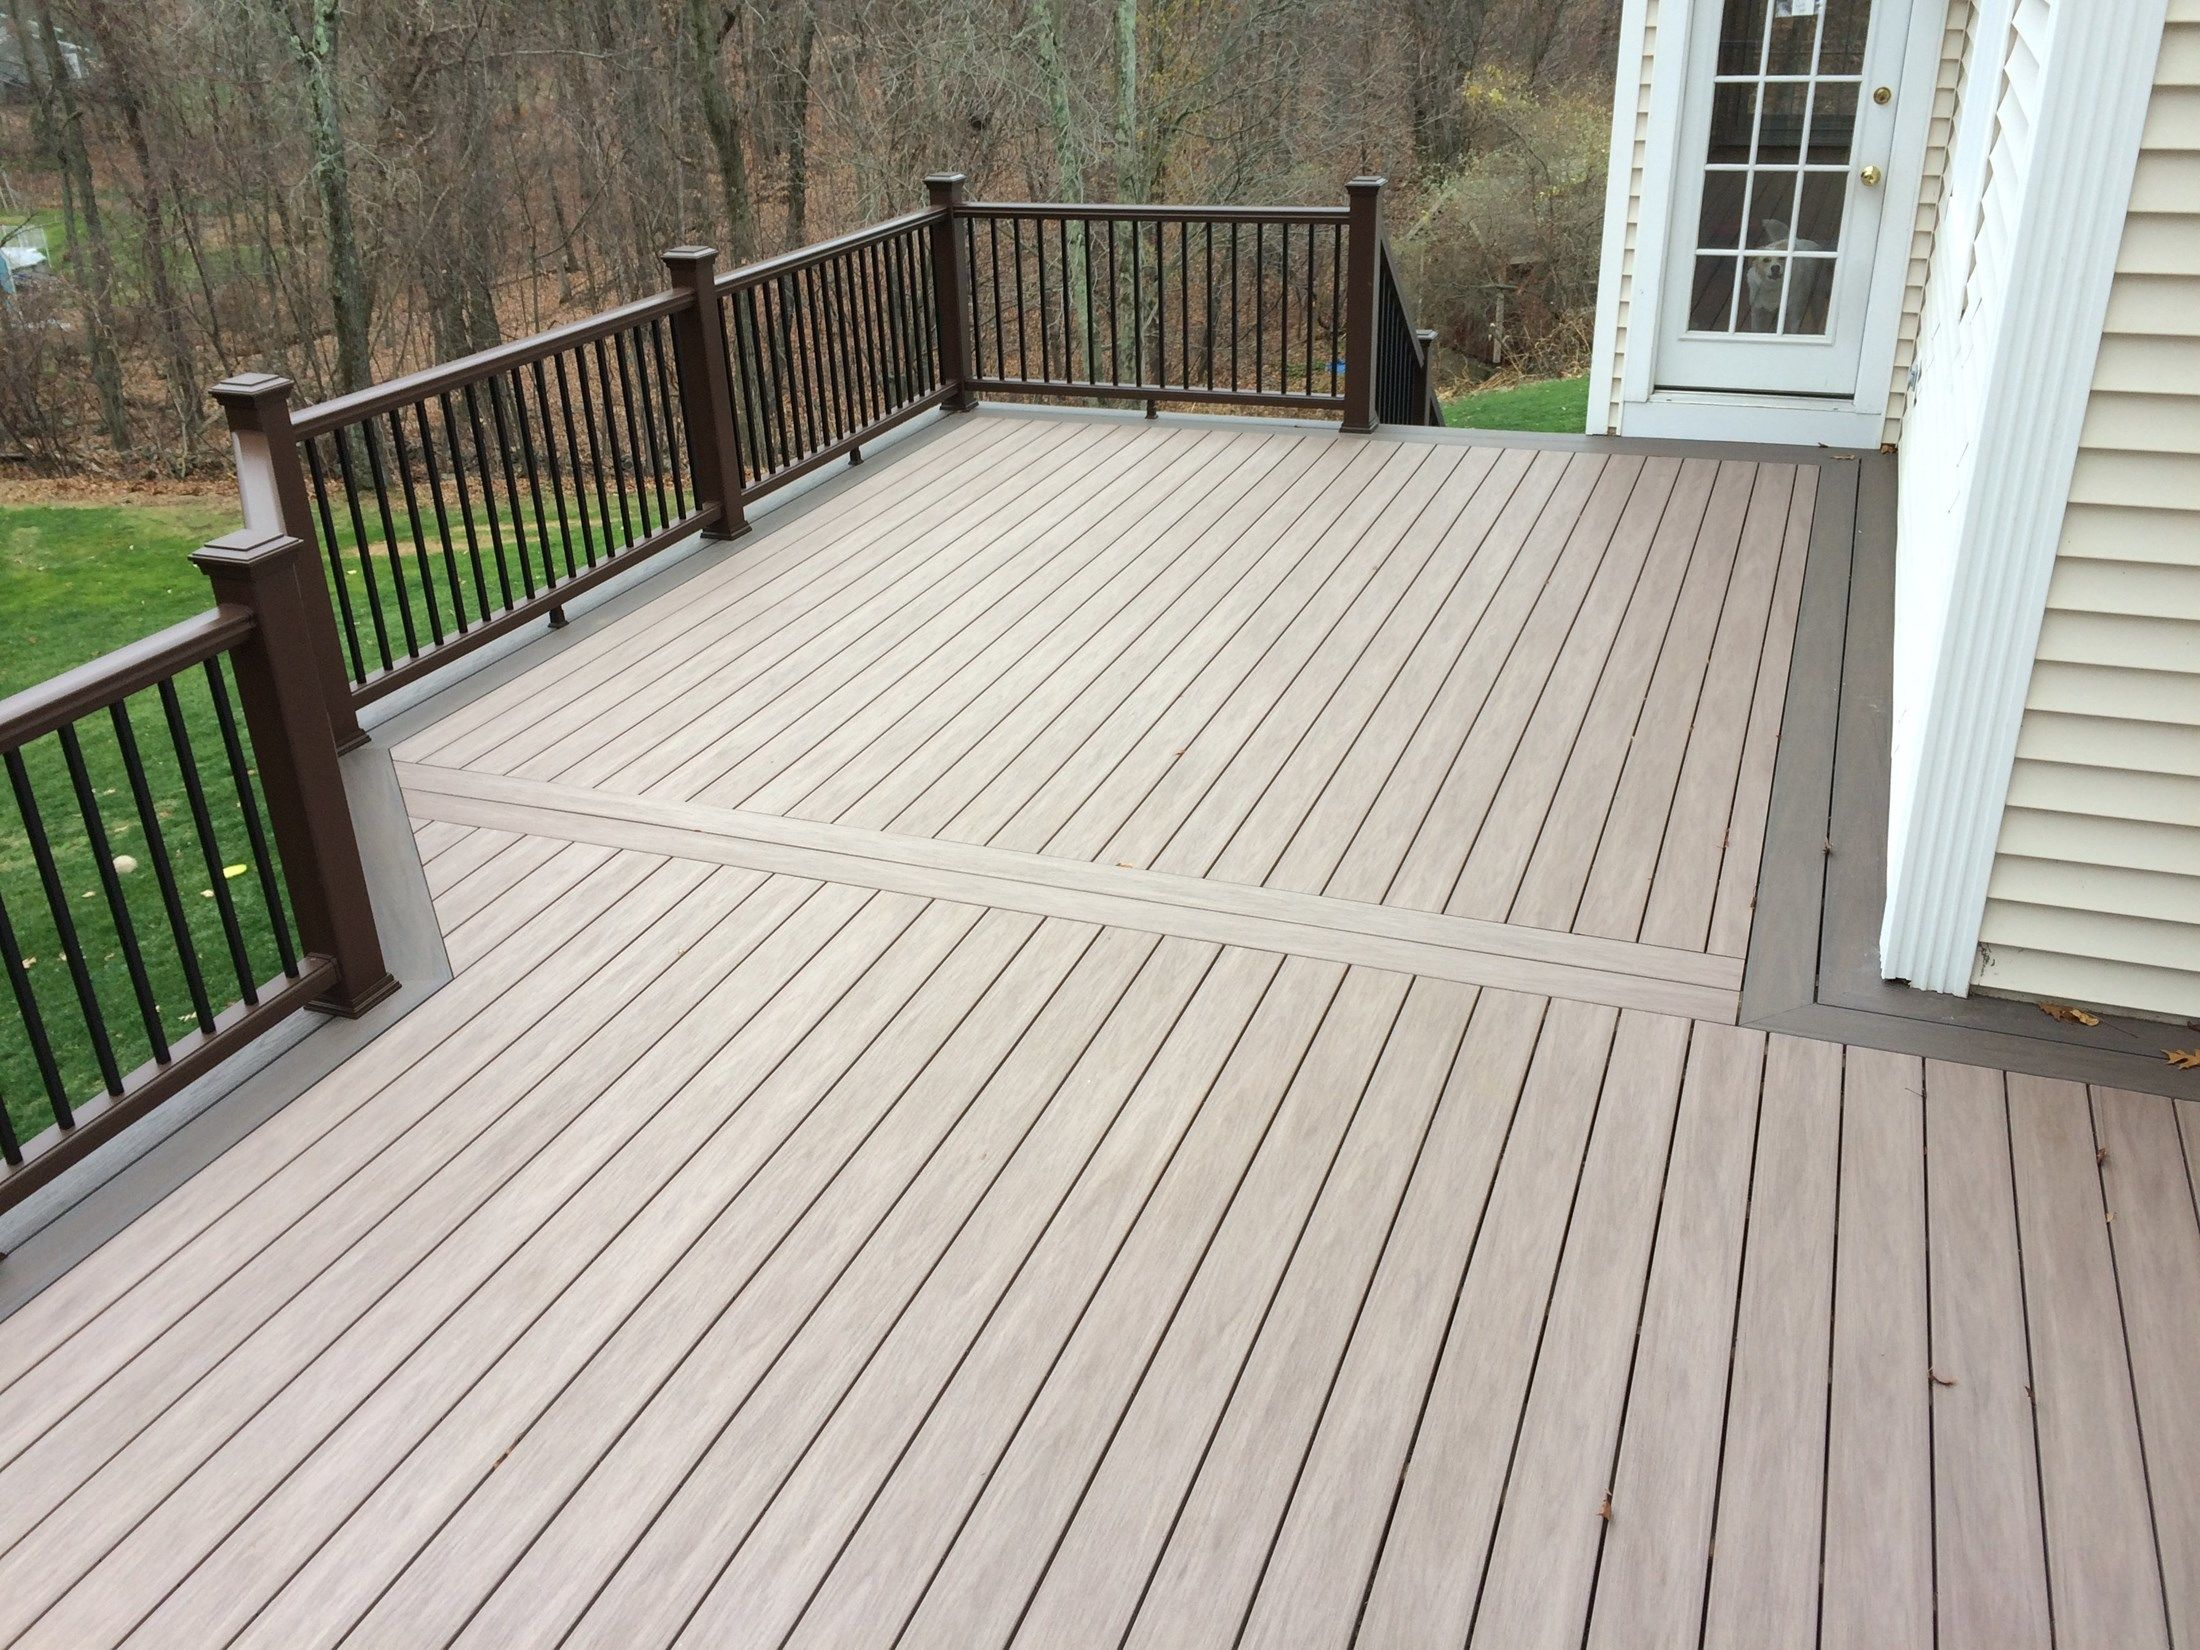 Second Story Deck - Picture 3838